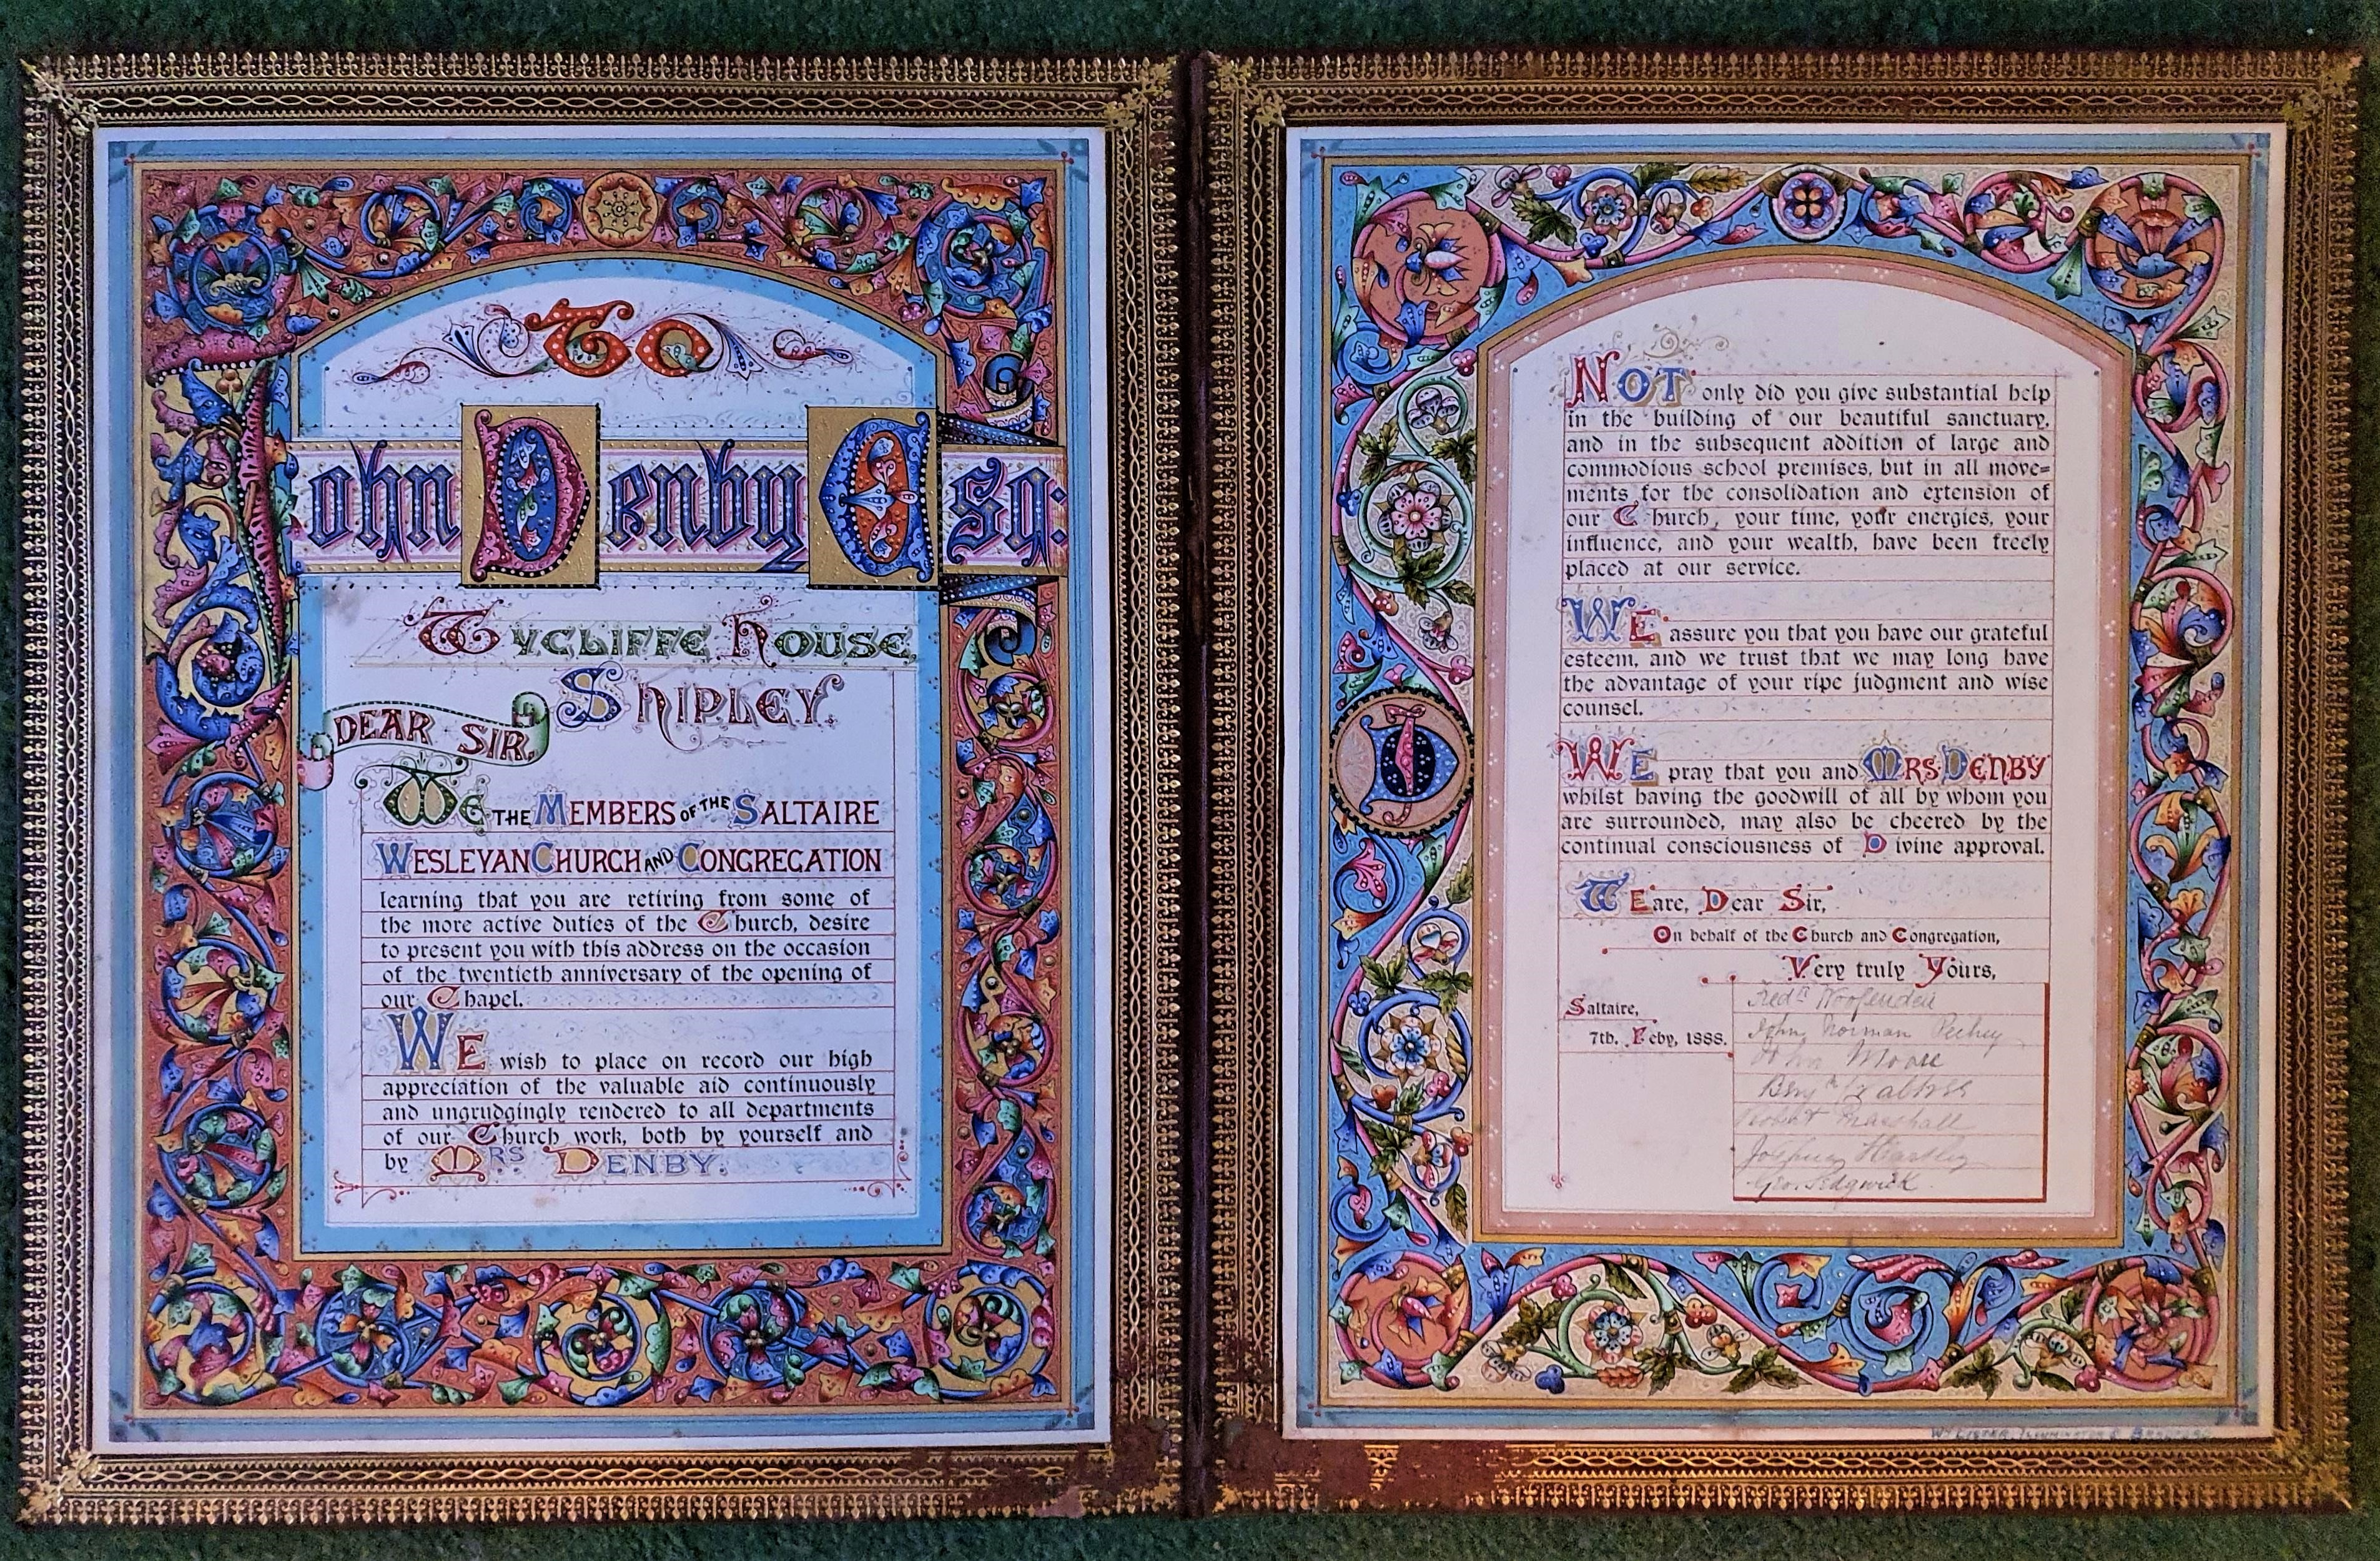 Image for Illuminated Manuscript Address to John Denby Esq. of Wycliffe House, Shipley, West Yorkshire.